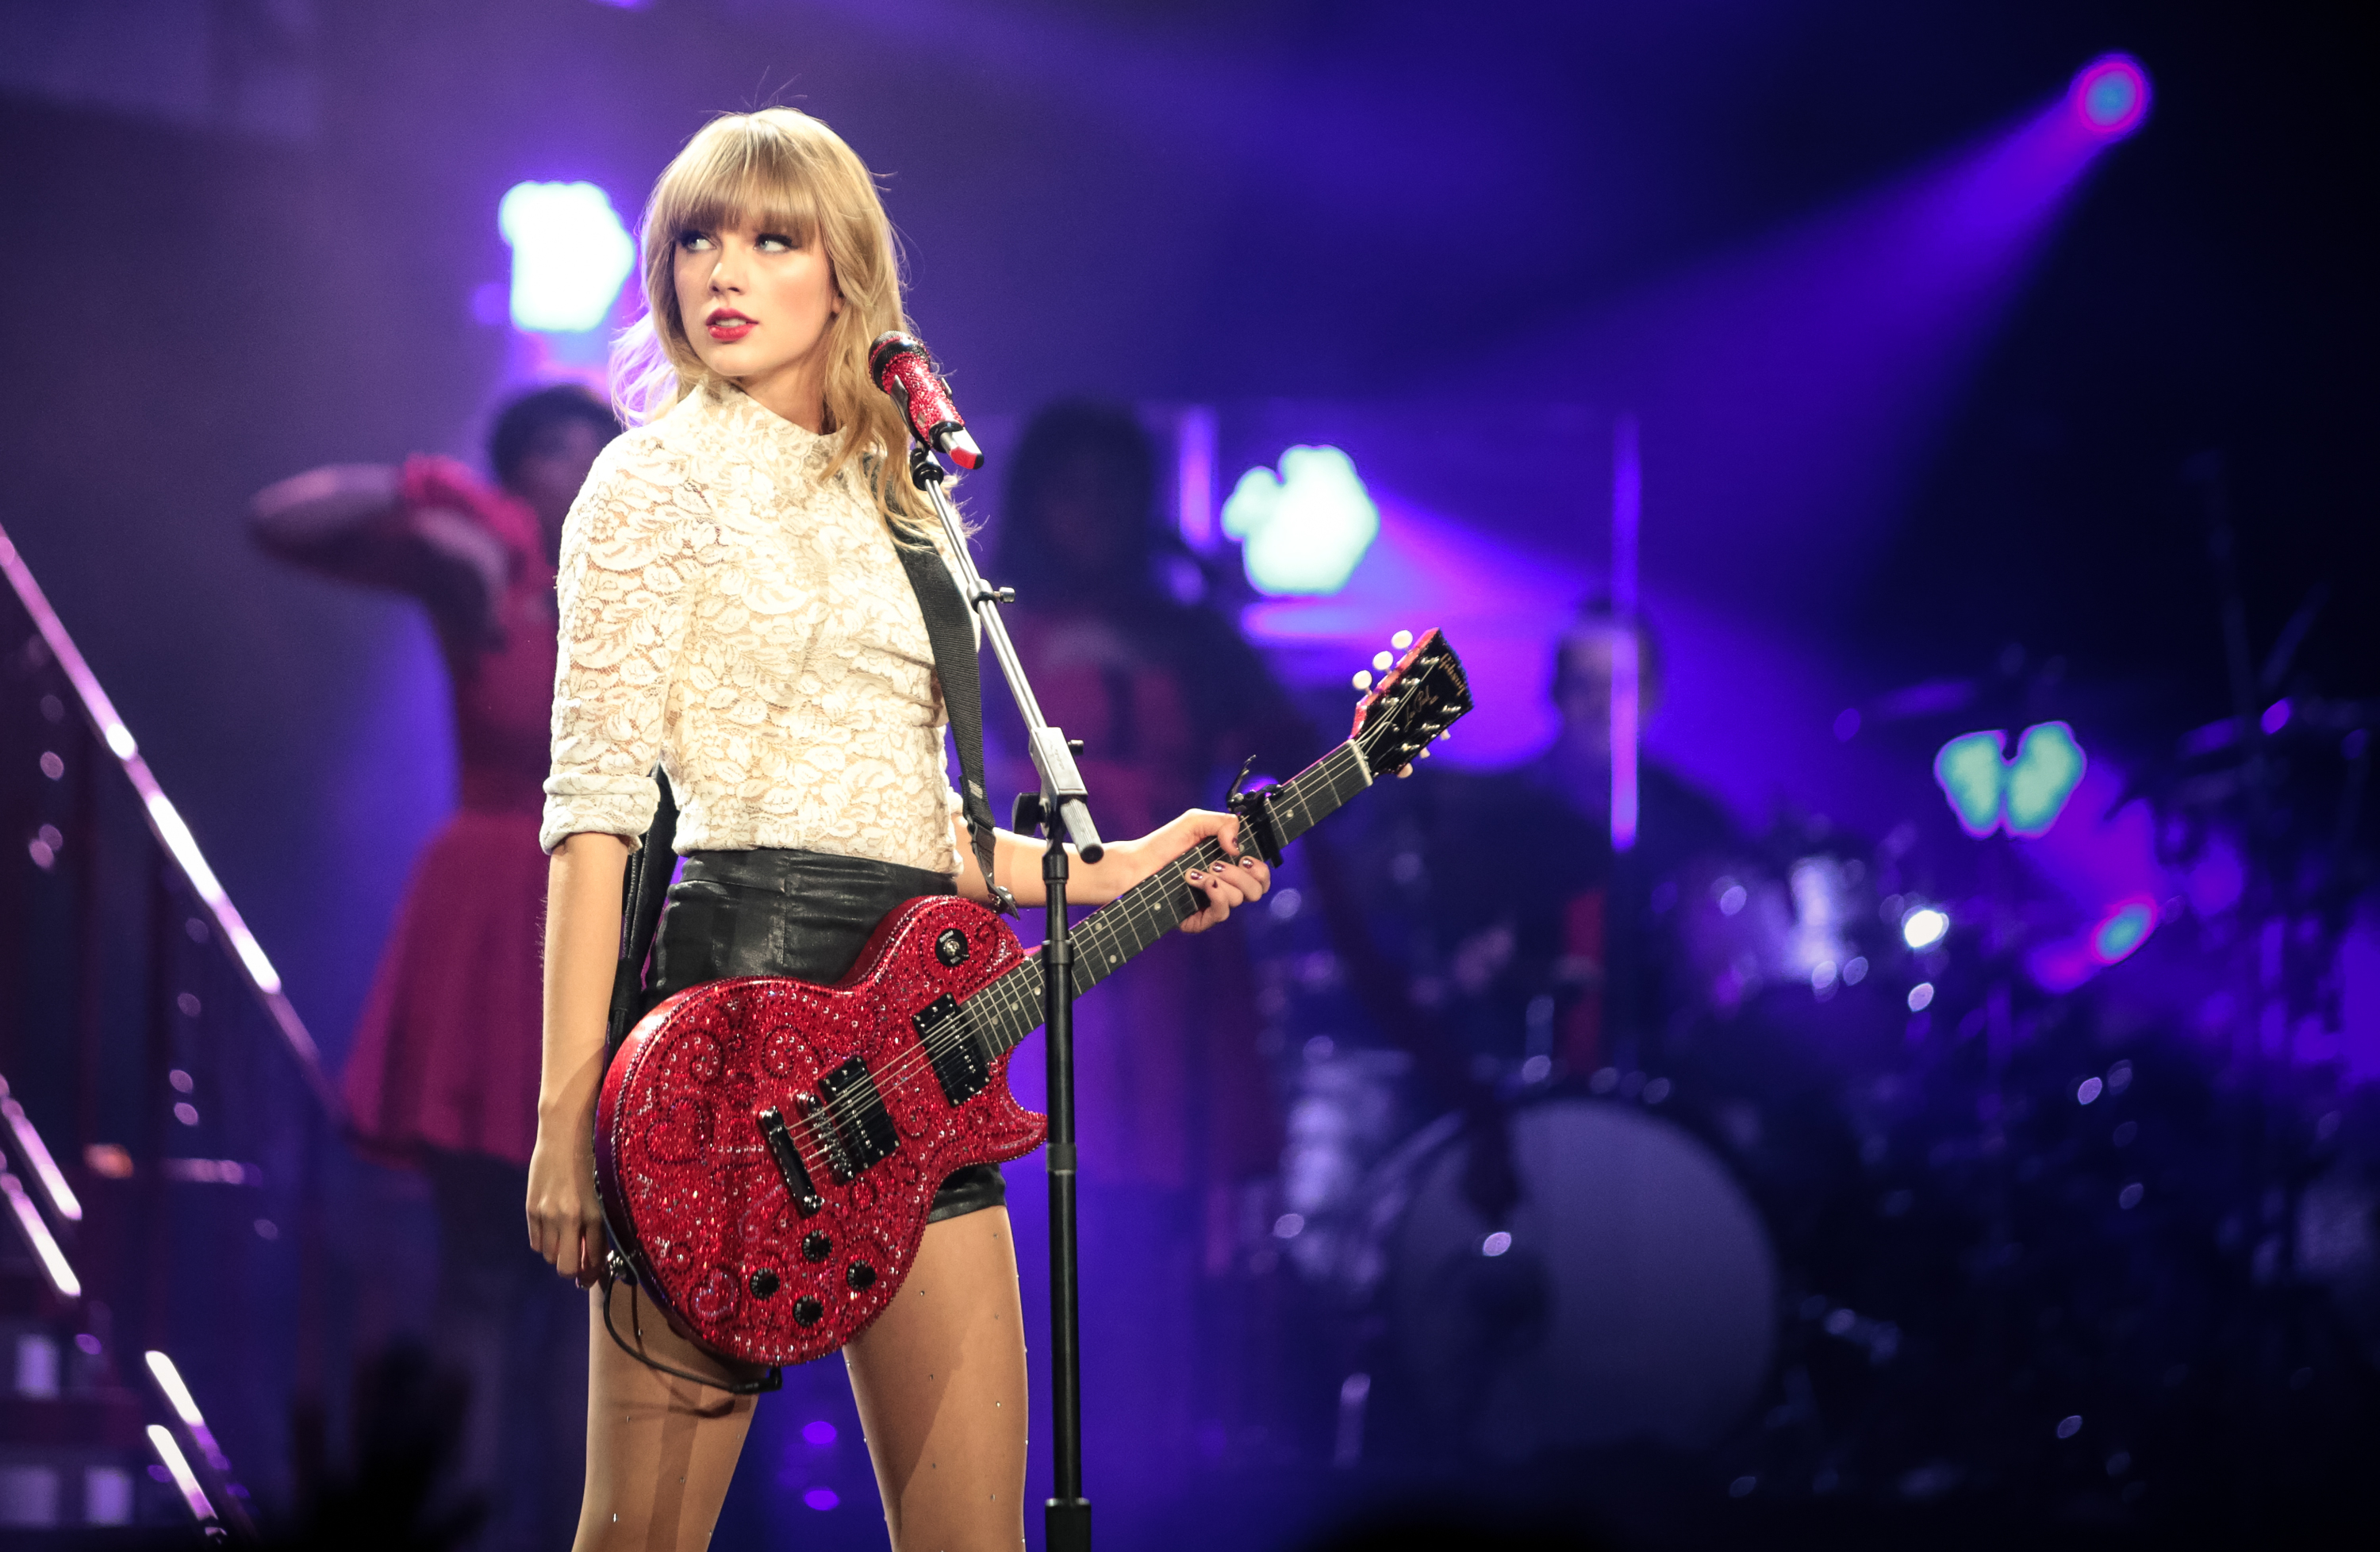 Pin by Emily Grima on Taylor Swift Party | Taylor swift ...